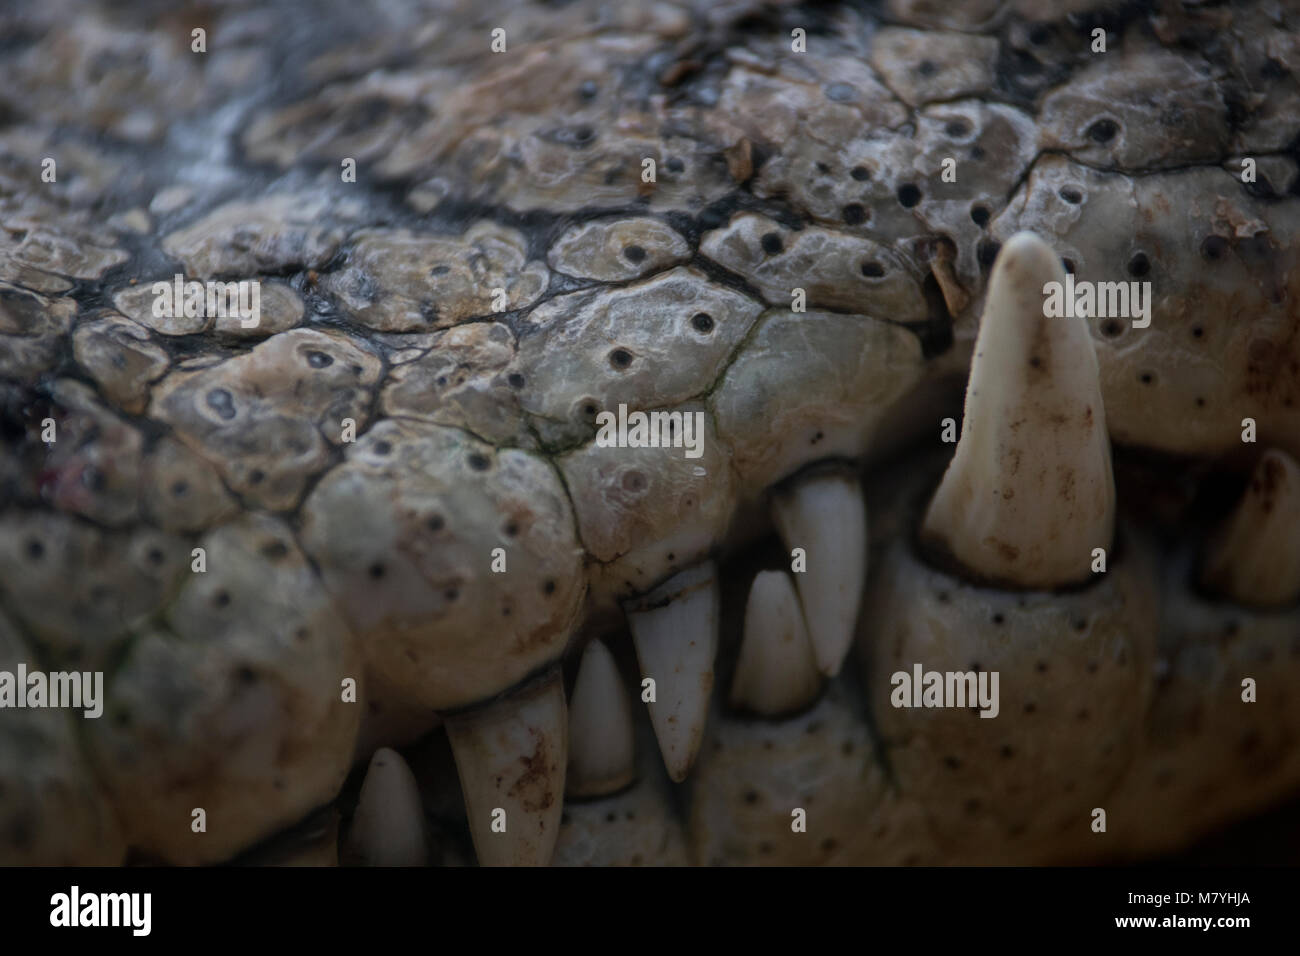 Detail of the fangs of a nile crocodile - Stock Image